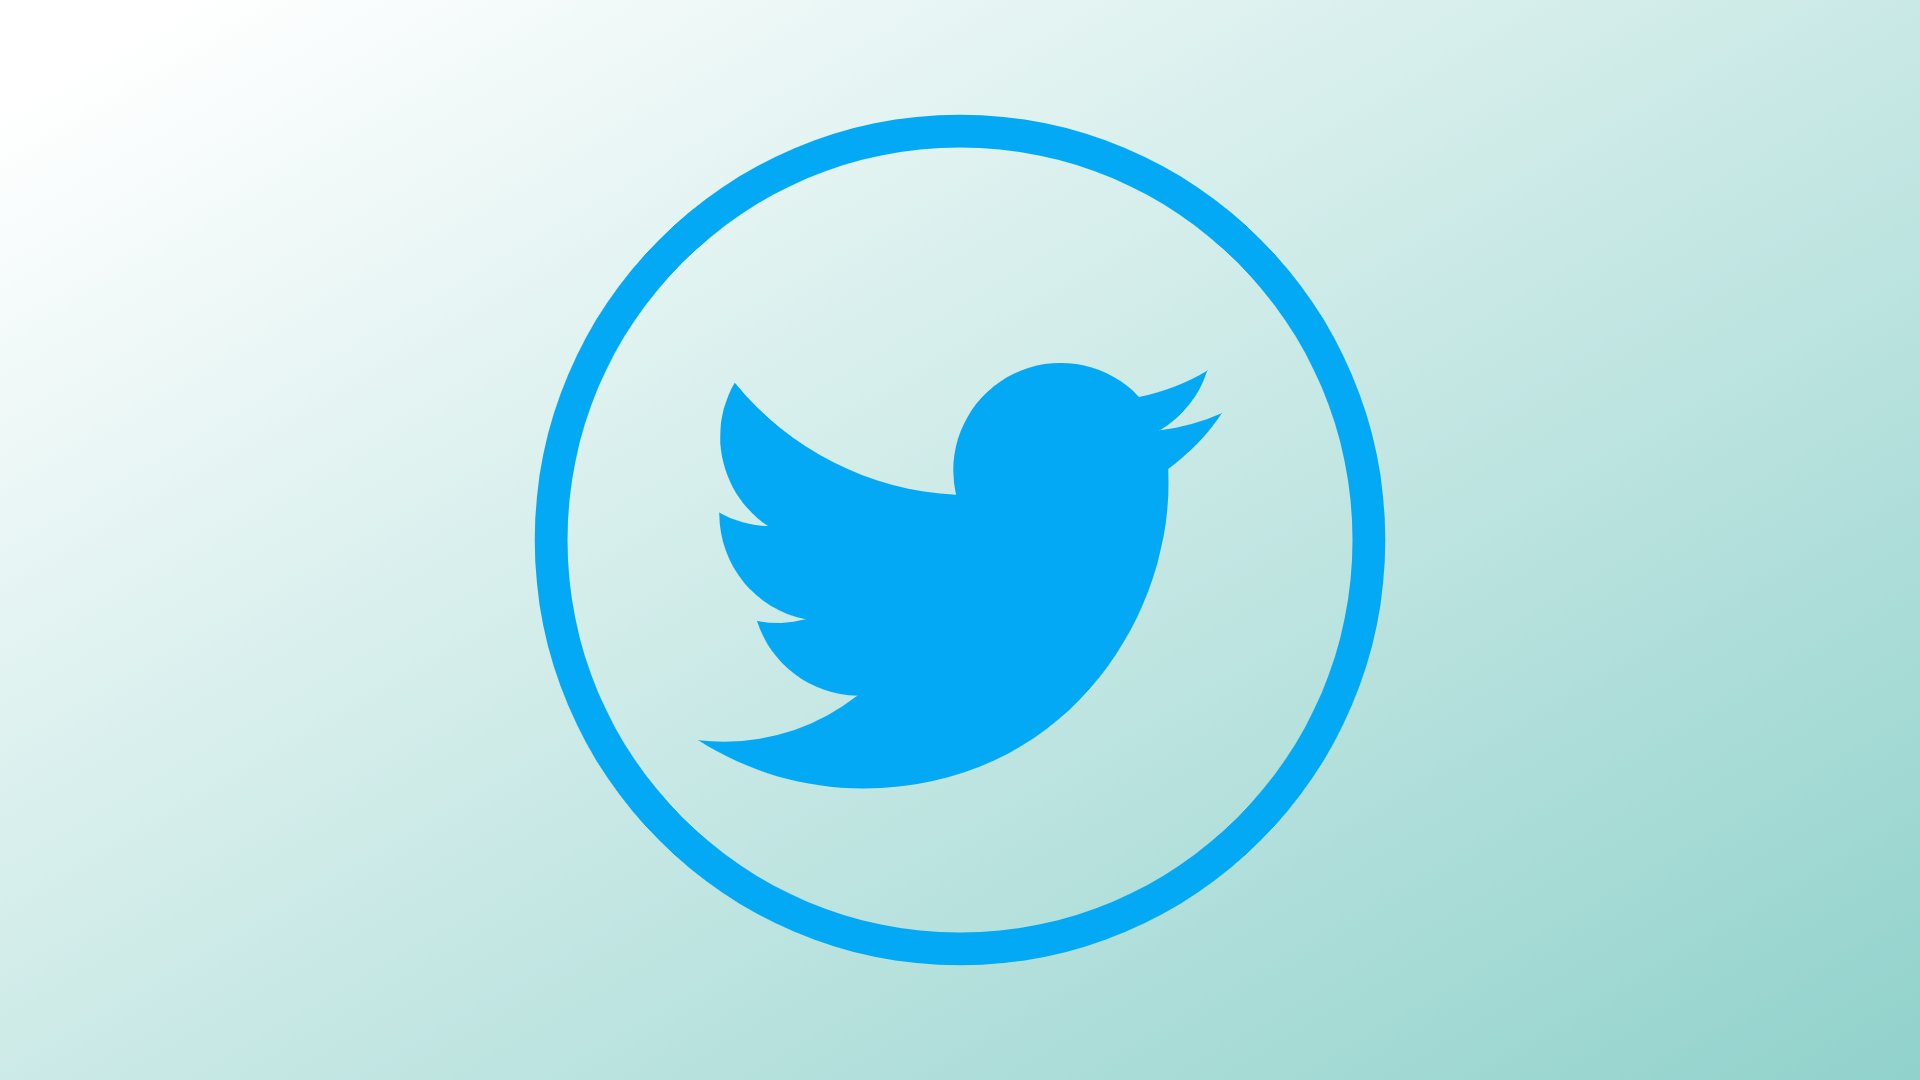 Twitter's new account switch feature on the web just got even better